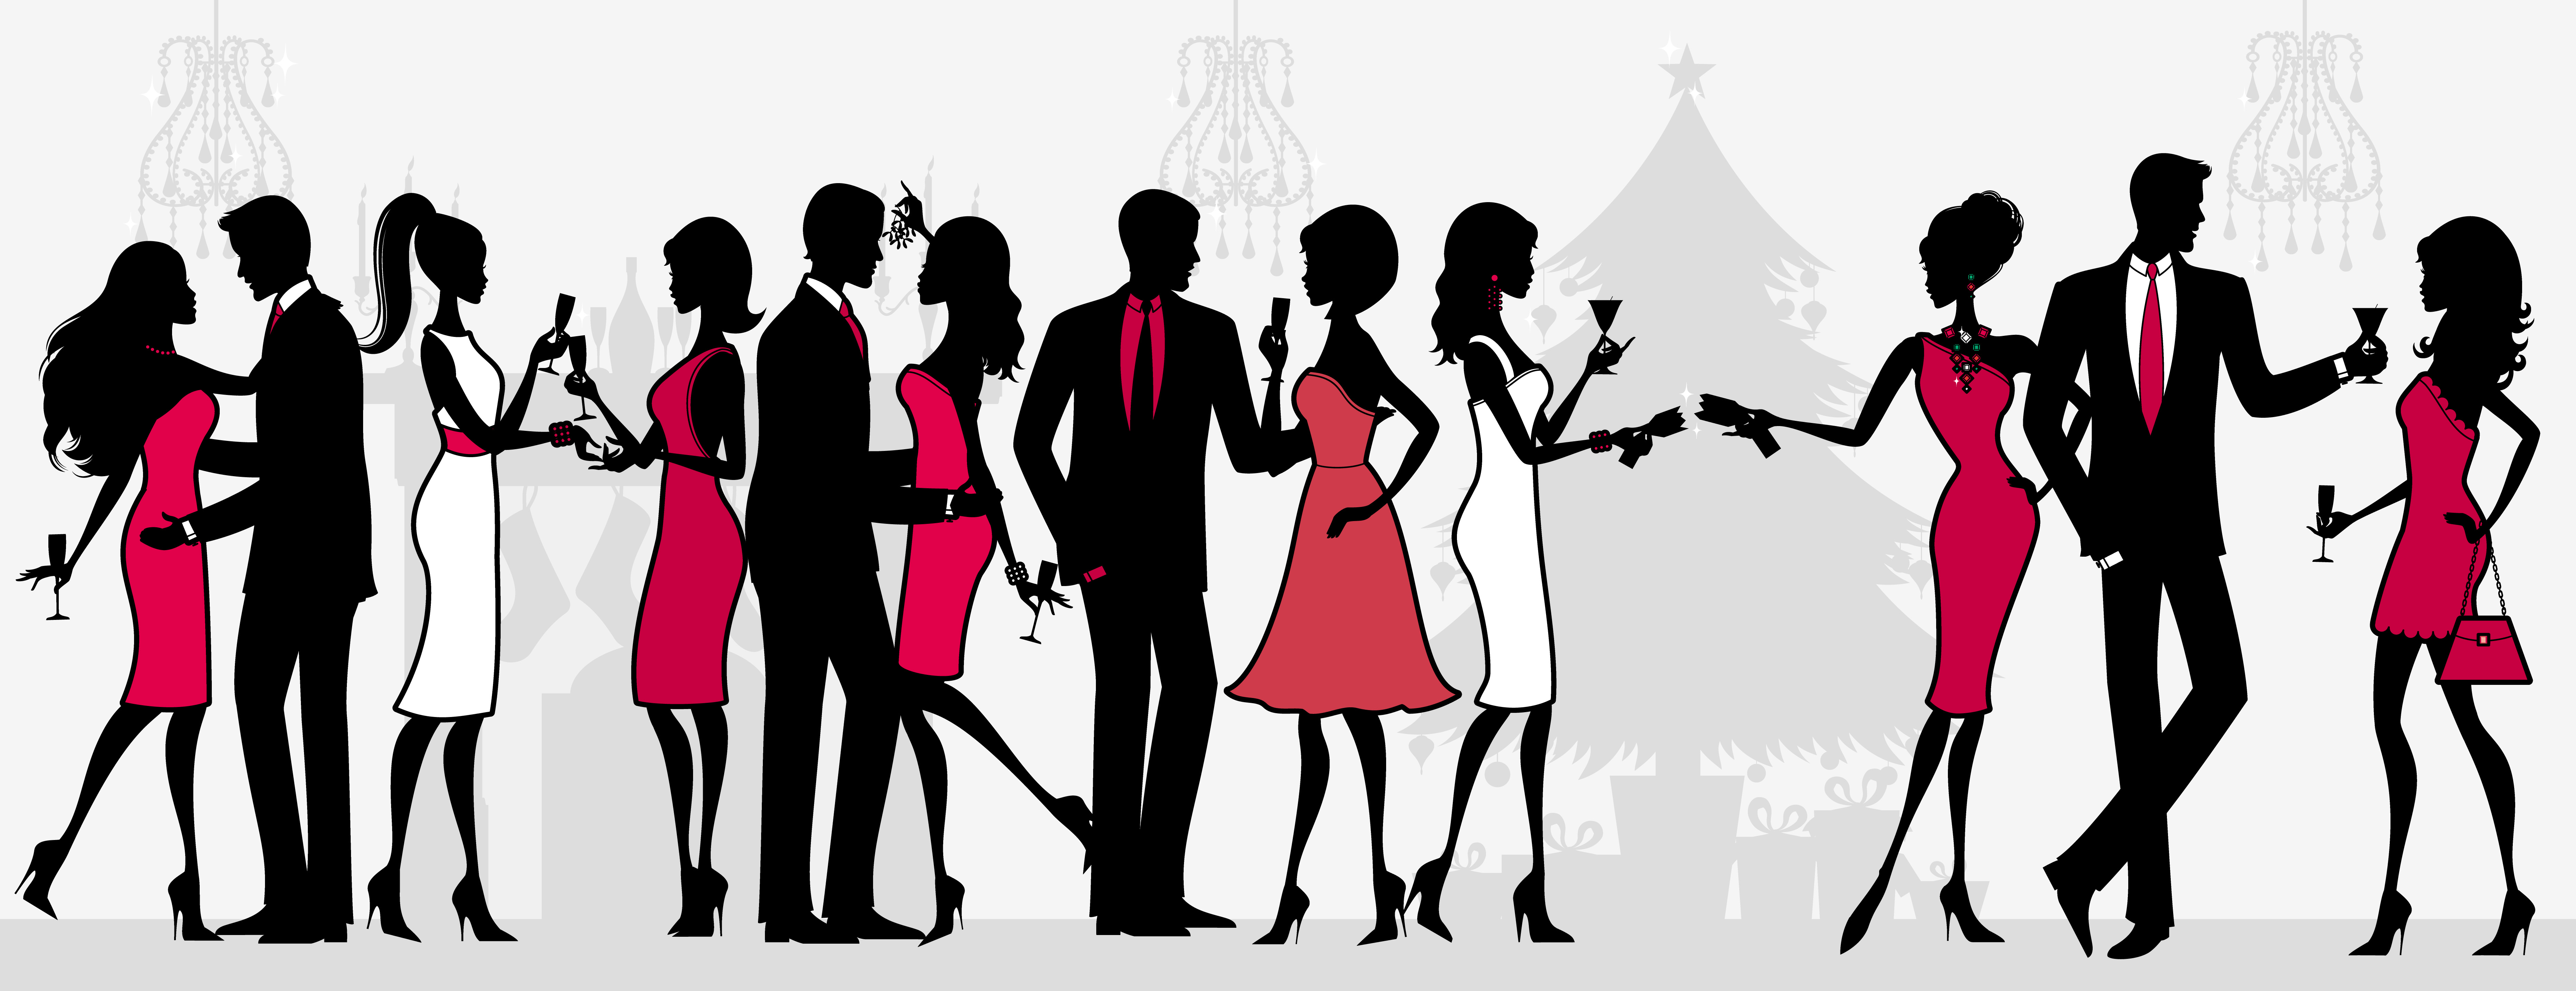 7456x2868 Cocktail Party Clipart Collection